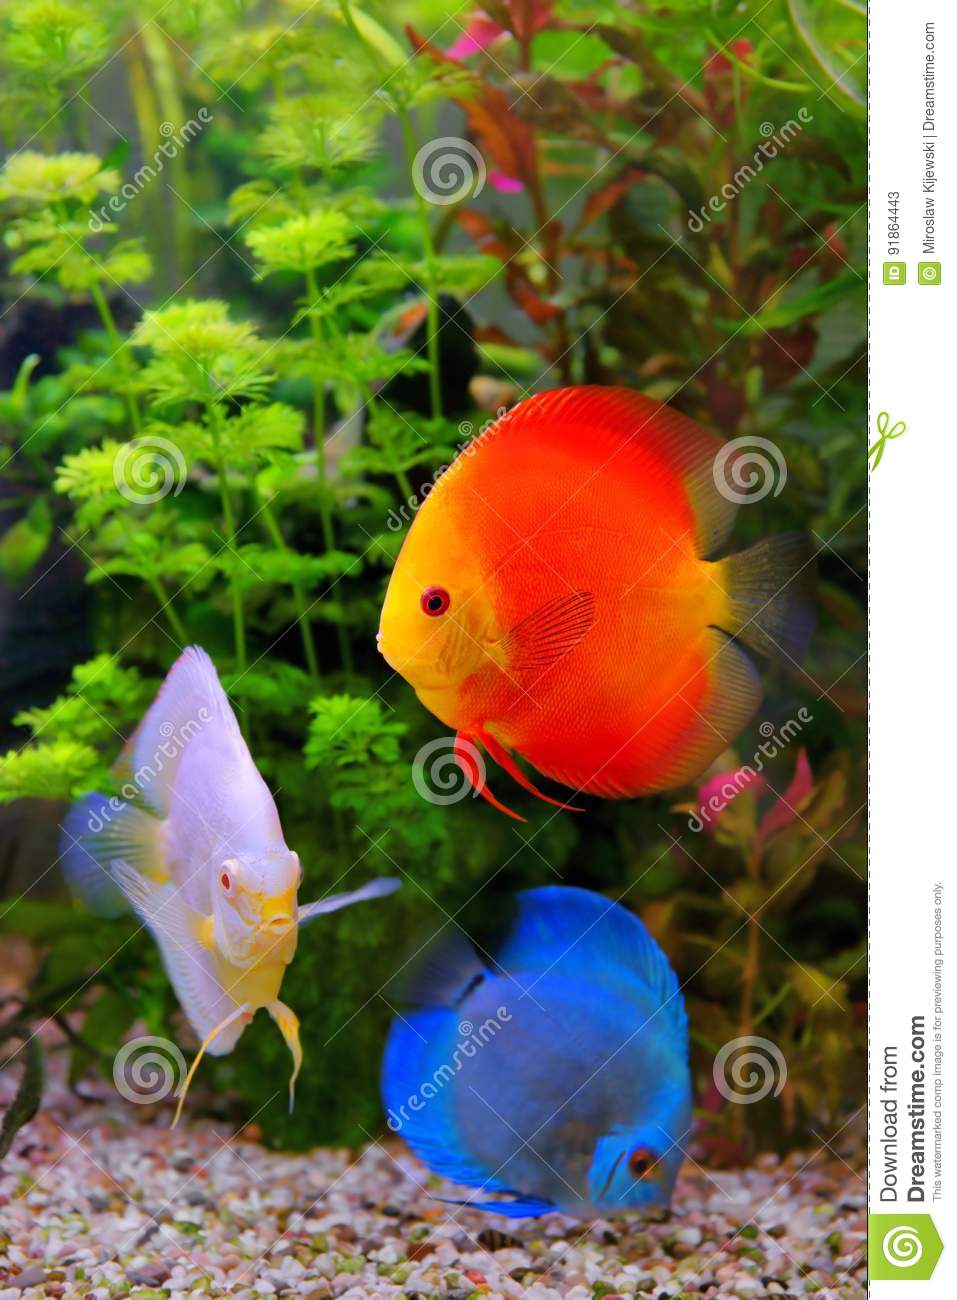 Freshwater fish amazon - Discus Symphysodon Multi Colored Cichlids In The Aquarium The Freshwater Fish Native To